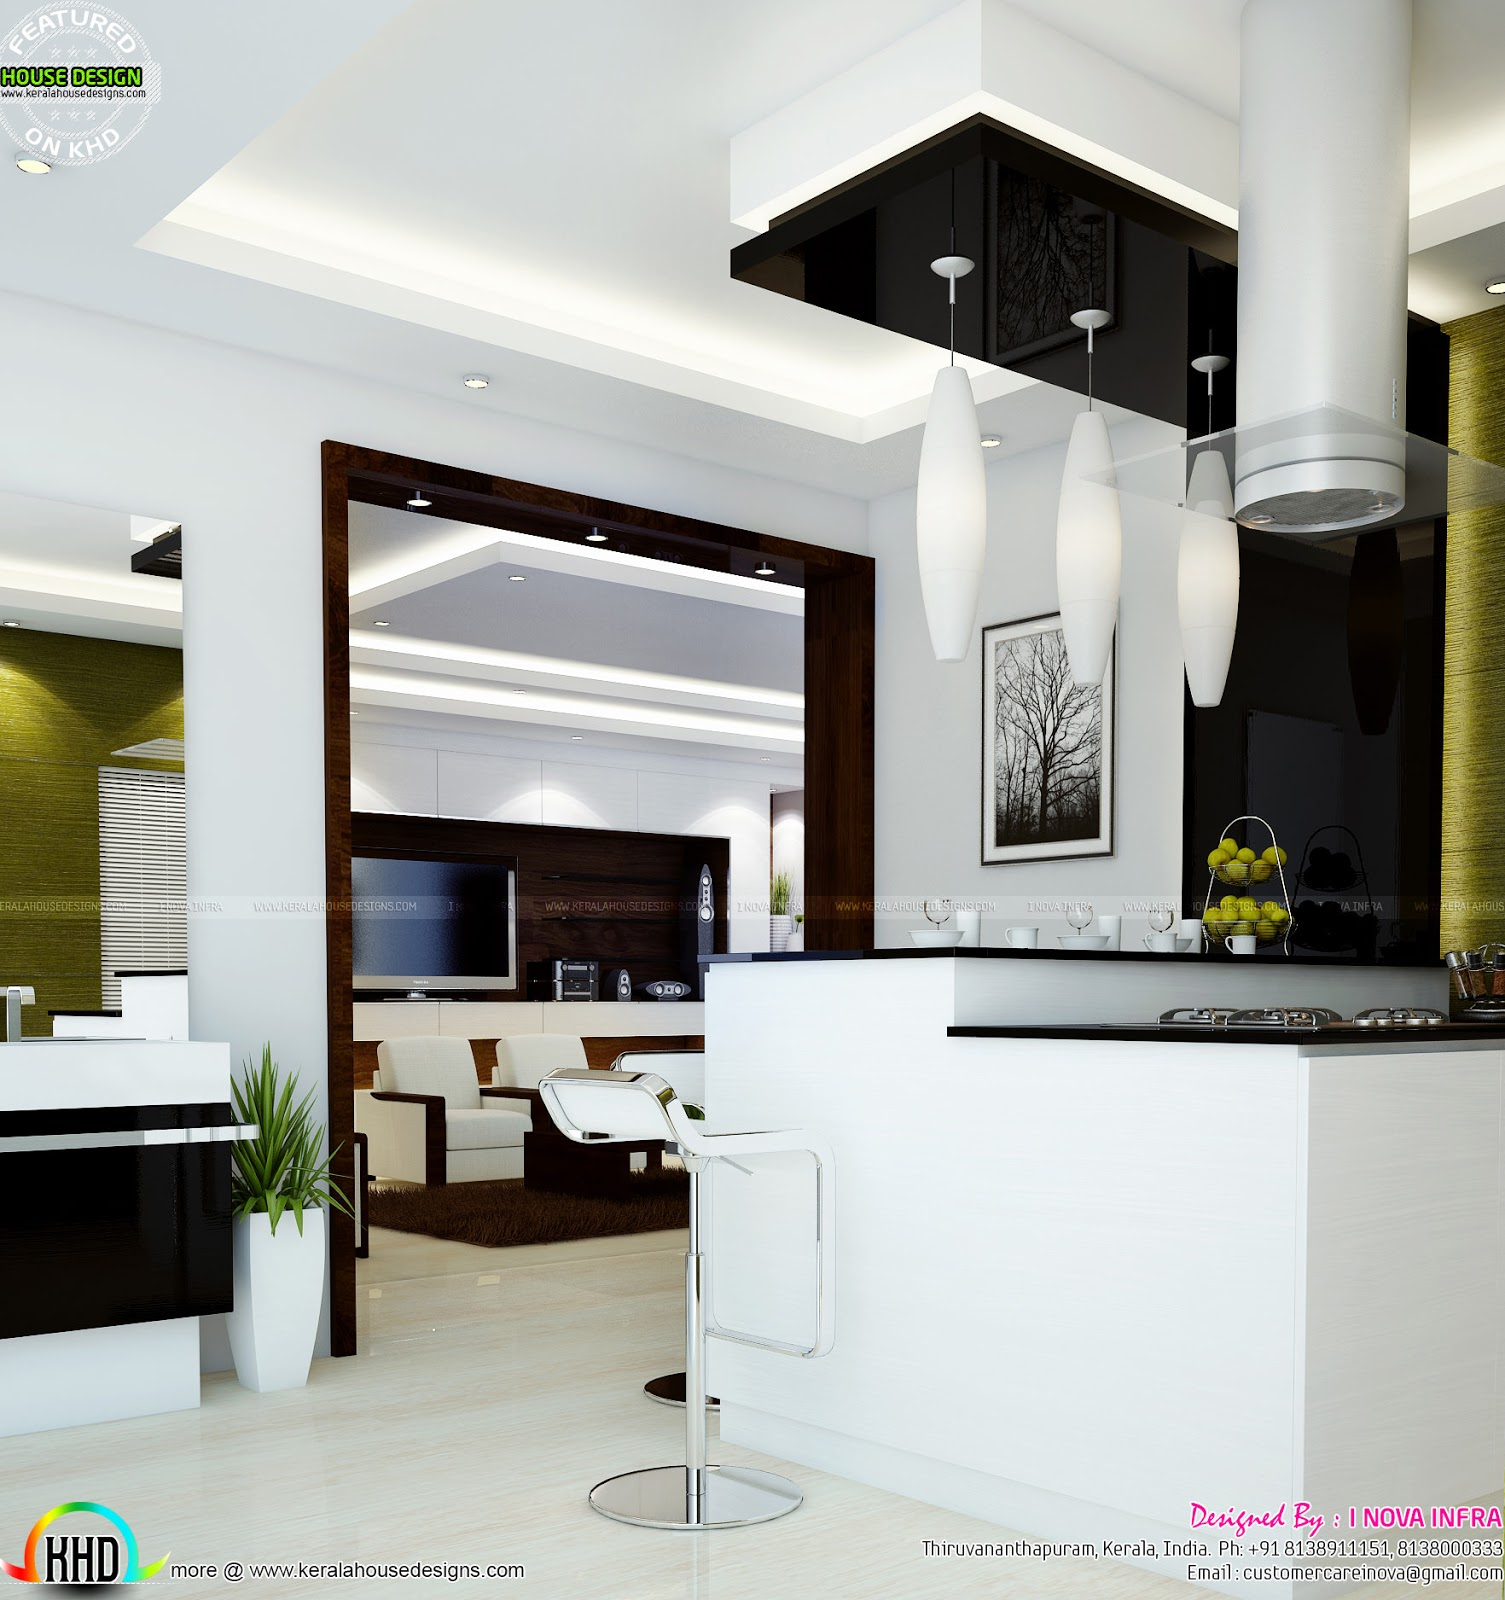 Design My Home: Home Interior Designs By I Nova Infra